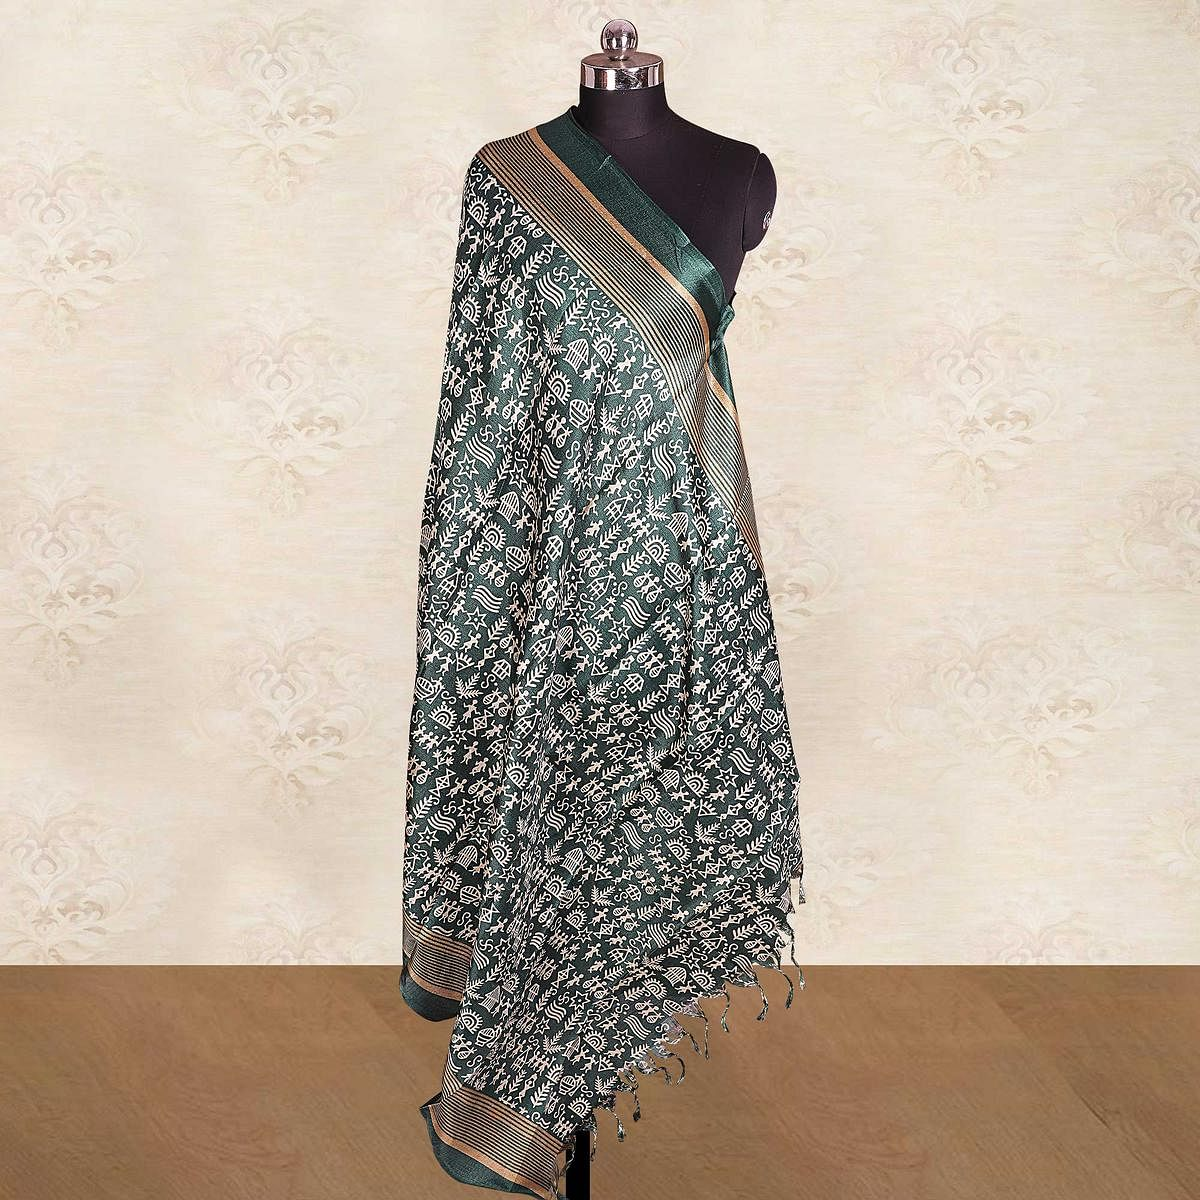 Ethnic Teal Green Colored Casual Wear Printed Cotton Blend Dupatta With Tassels